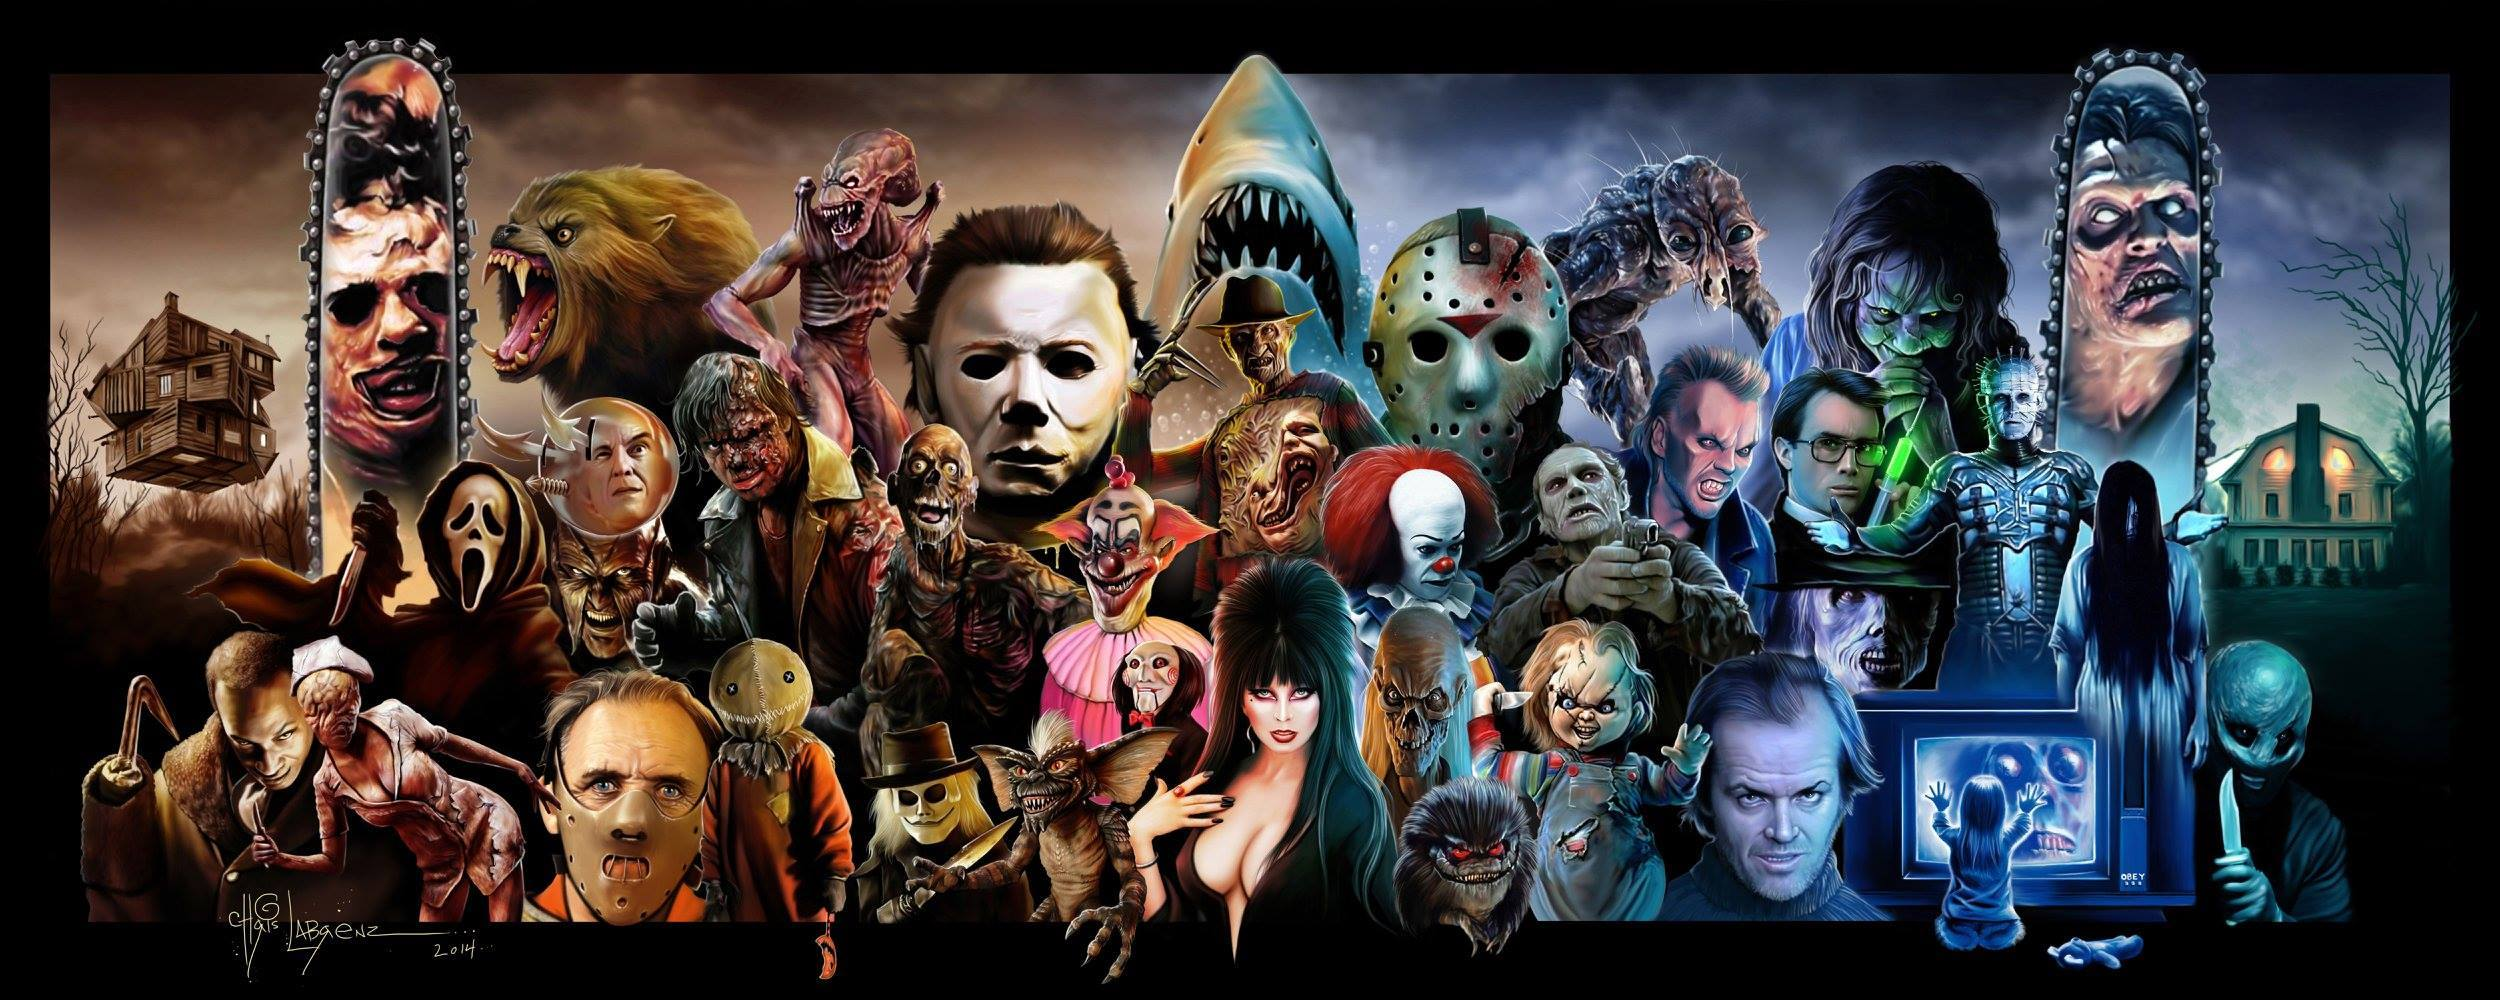 horror-movie-villains-collage [Source: shnakebite91 Wordpress]